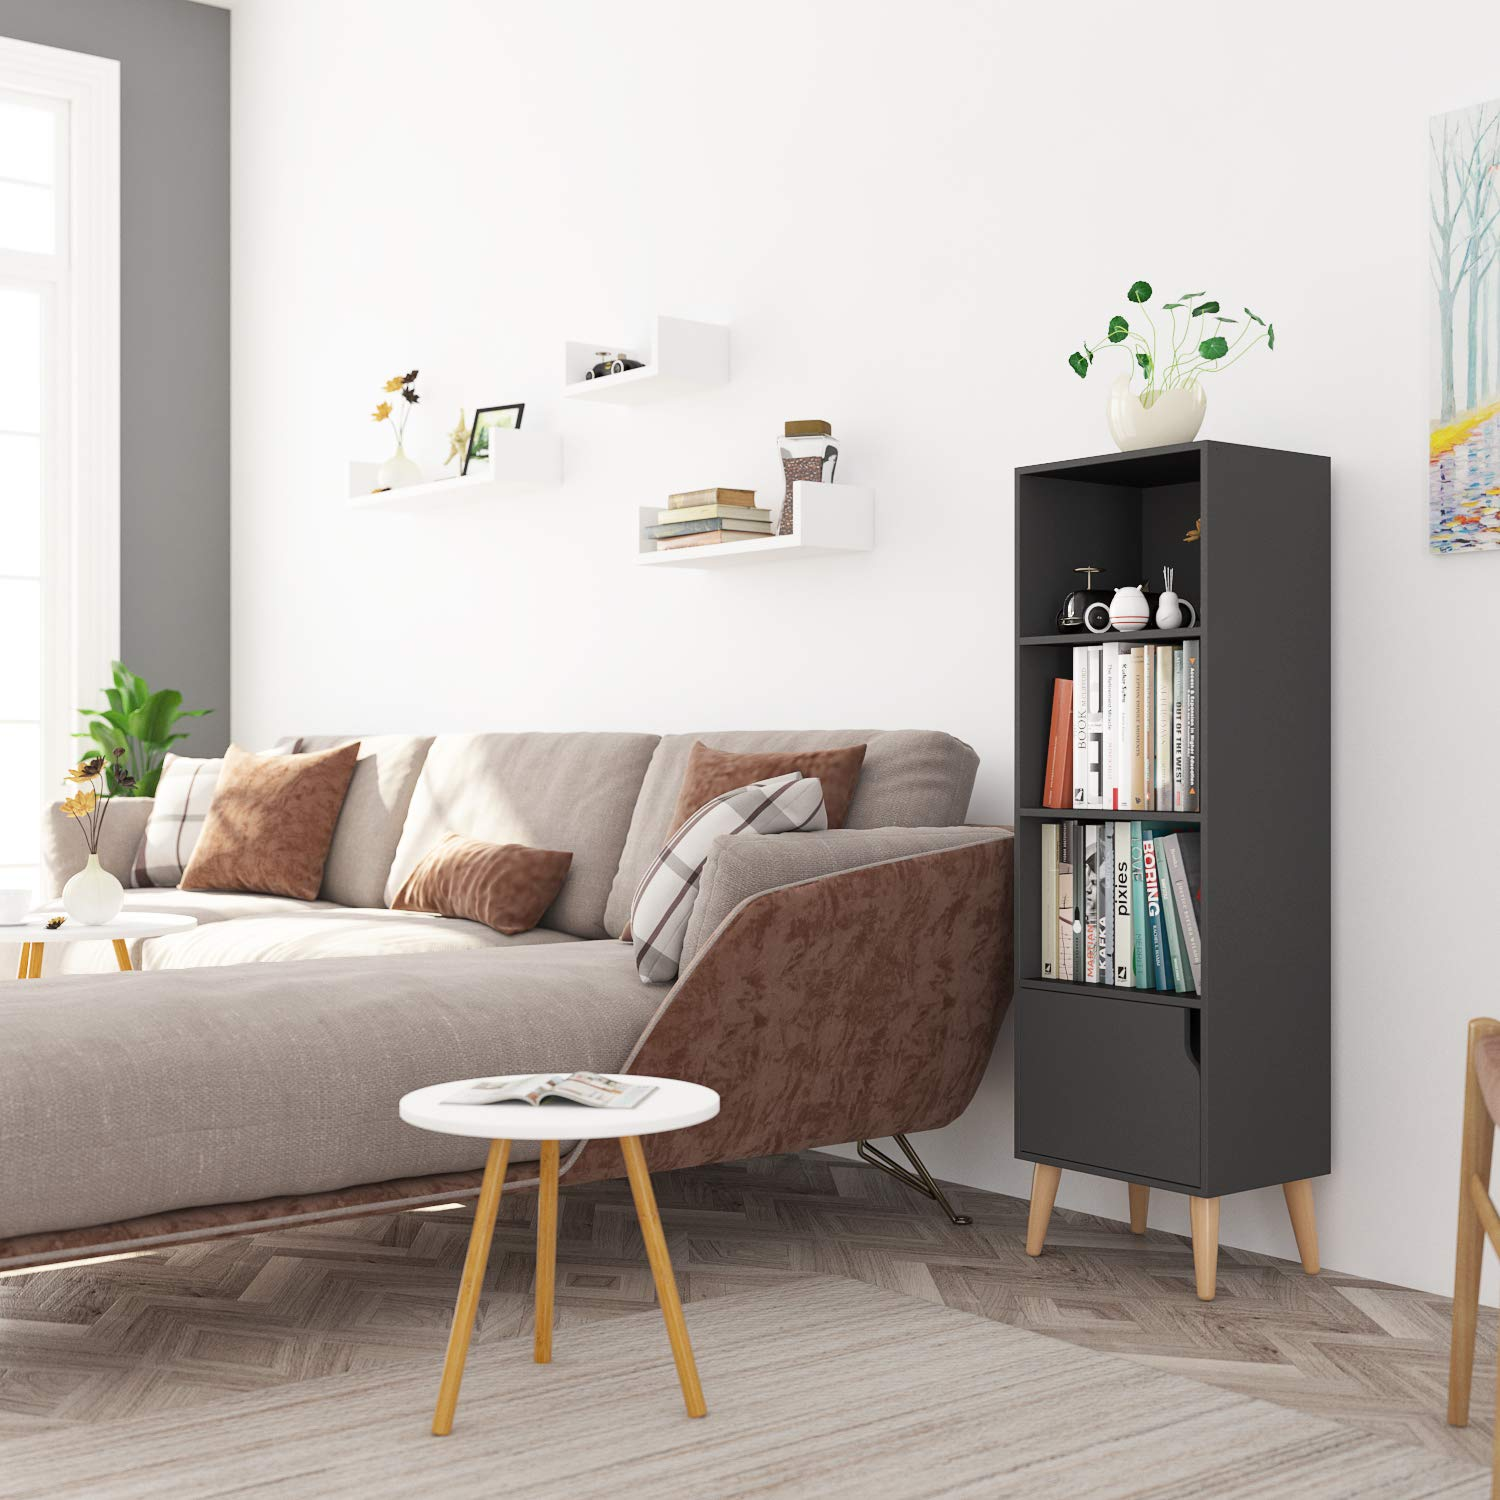 Homfa 4 Tier Floor Cabinet, Free Standing Wooden Display Bookshelf with 4 Legs and 1 Door, Side Corner Storage Cabinet Decor Furniture for Home Office, Gray by Homfa (Image #6)